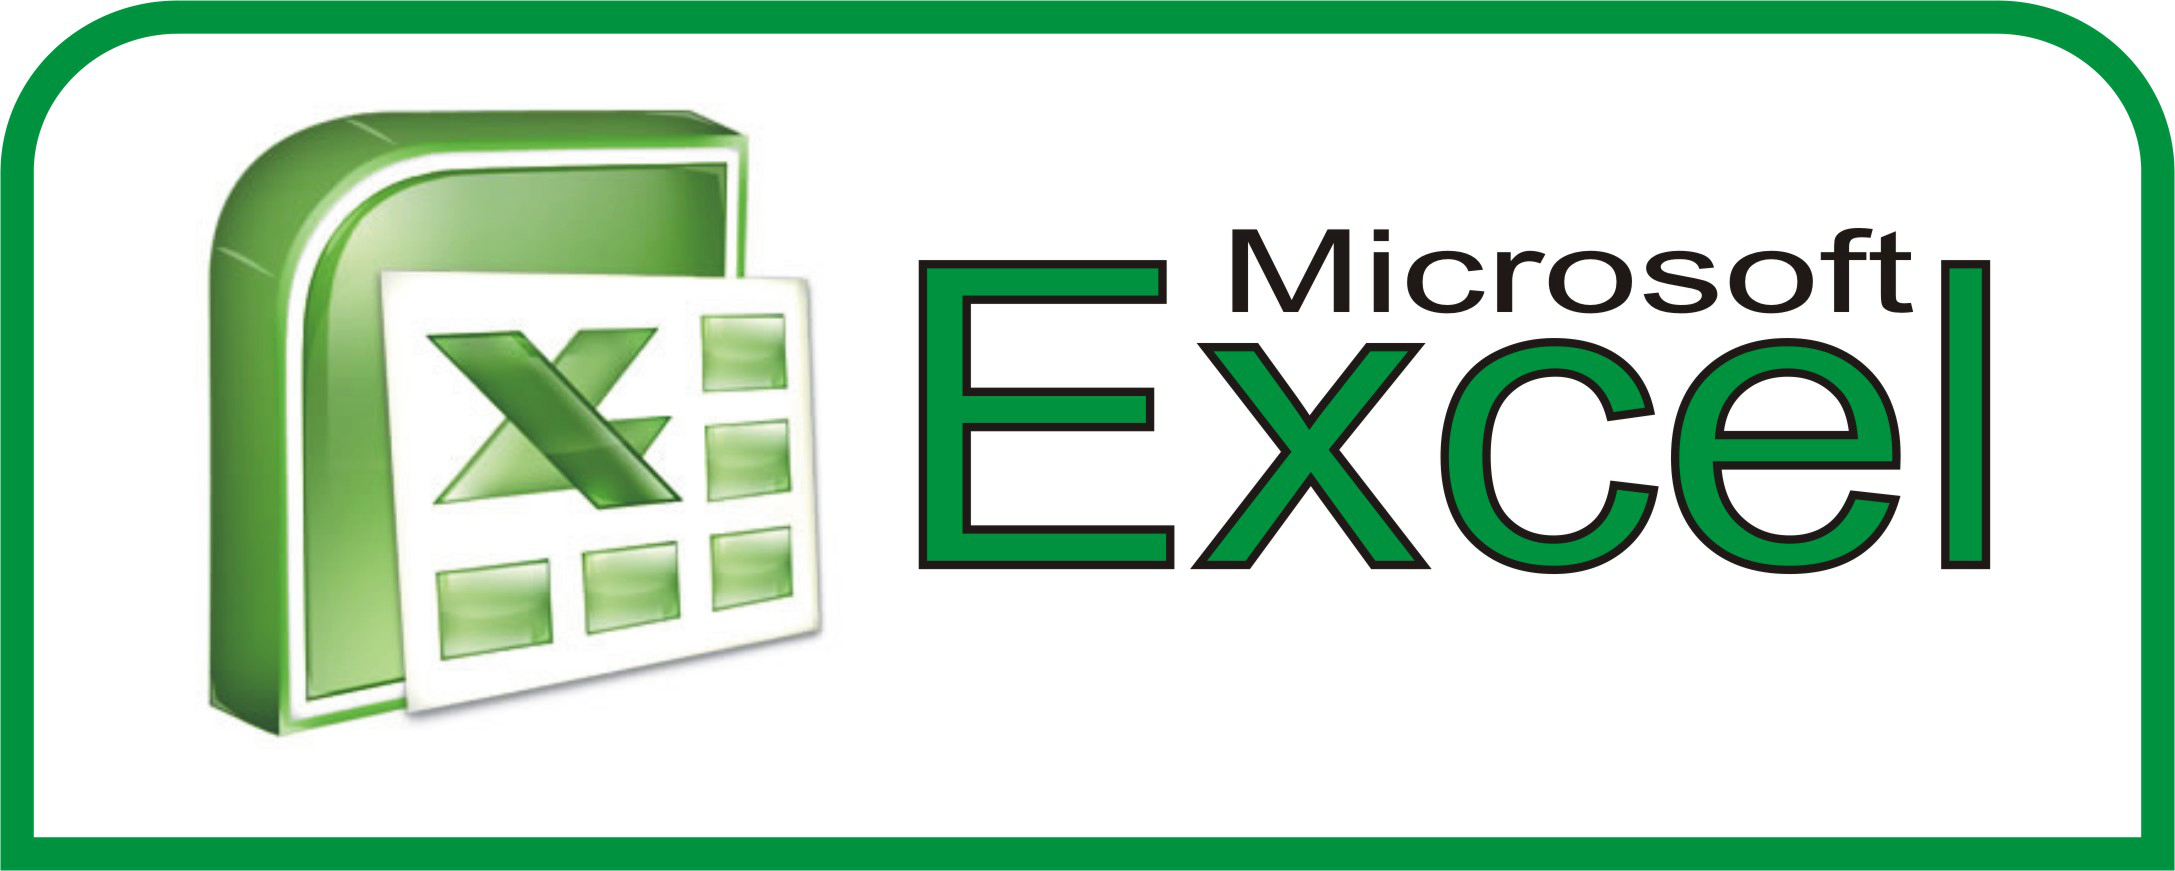 Ediblewildsus  Picturesque  Excel Shortcuts You Probably Didnt Know About  Techdissected With Licious Complex Excel Formulas Besides How To Add Drop Down List In Excel  Furthermore Else If In Excel With Lovely Excel Format Date As Text Also Import Word Into Excel In Addition Excel Count Functions And Dynamic Table Excel As Well As Sort By Color Excel Additionally Excel Unhide Workbook From Techdissectedcom With Ediblewildsus  Licious  Excel Shortcuts You Probably Didnt Know About  Techdissected With Lovely Complex Excel Formulas Besides How To Add Drop Down List In Excel  Furthermore Else If In Excel And Picturesque Excel Format Date As Text Also Import Word Into Excel In Addition Excel Count Functions From Techdissectedcom